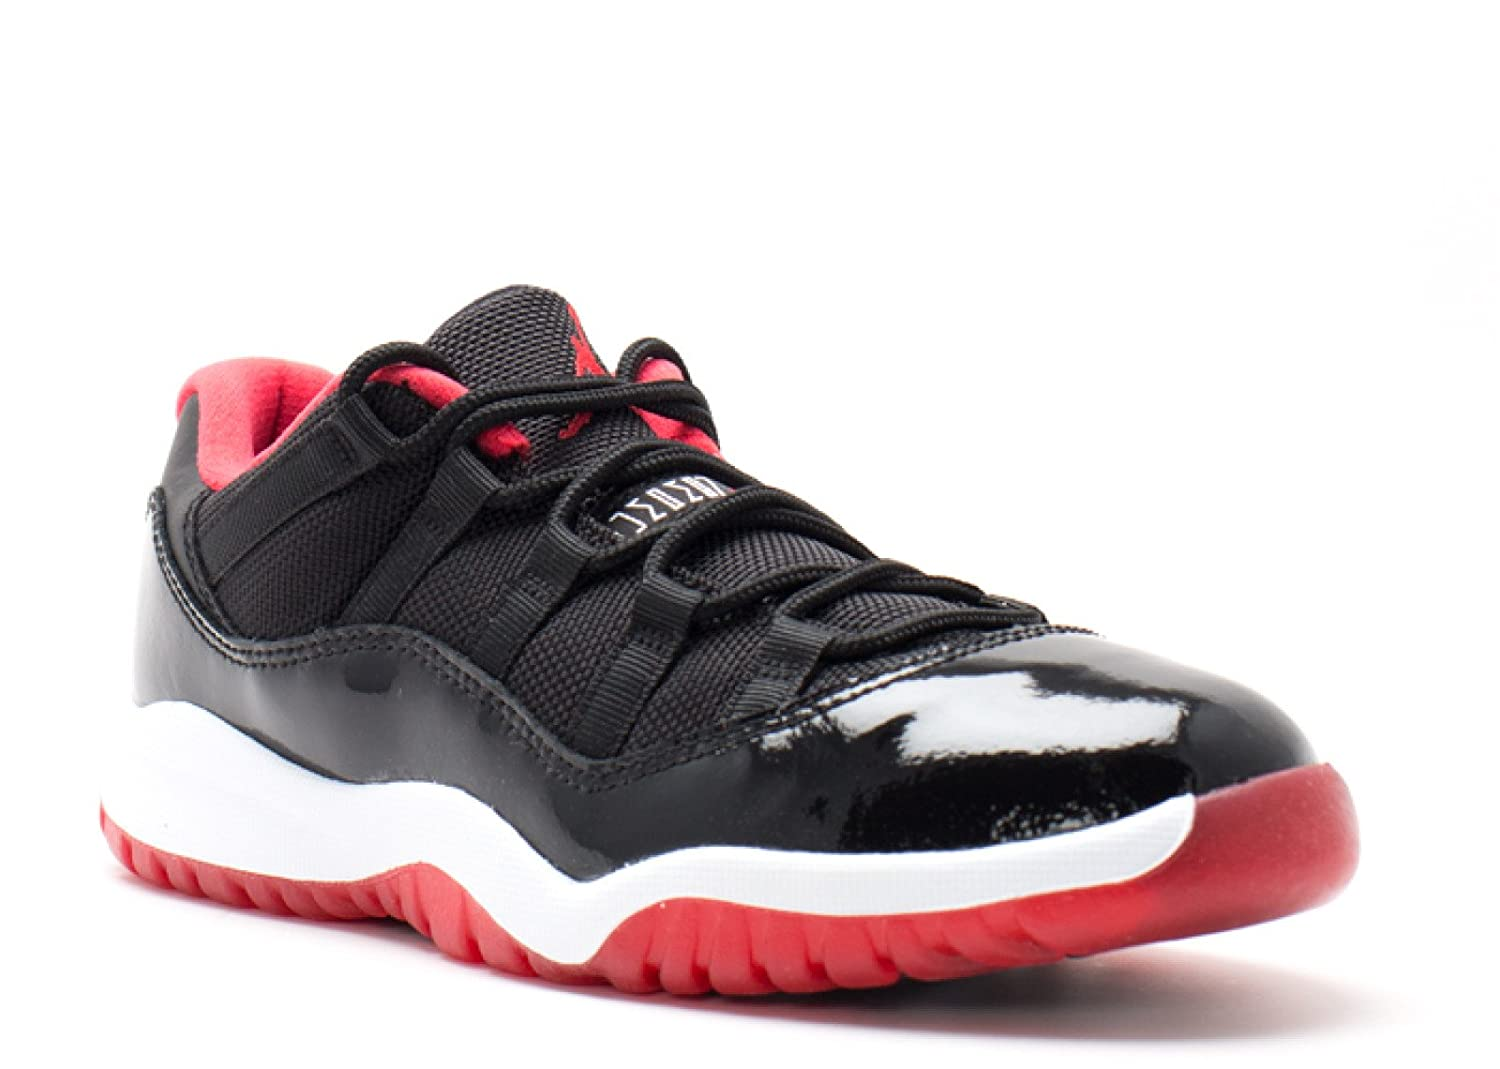 5fe051a3aaf Nike 505835-012 AIR Jordan 11 Retro Low (PS) PRE-School Shoes Black True  RED White  Buy Online at Low Prices in India - Amazon.in